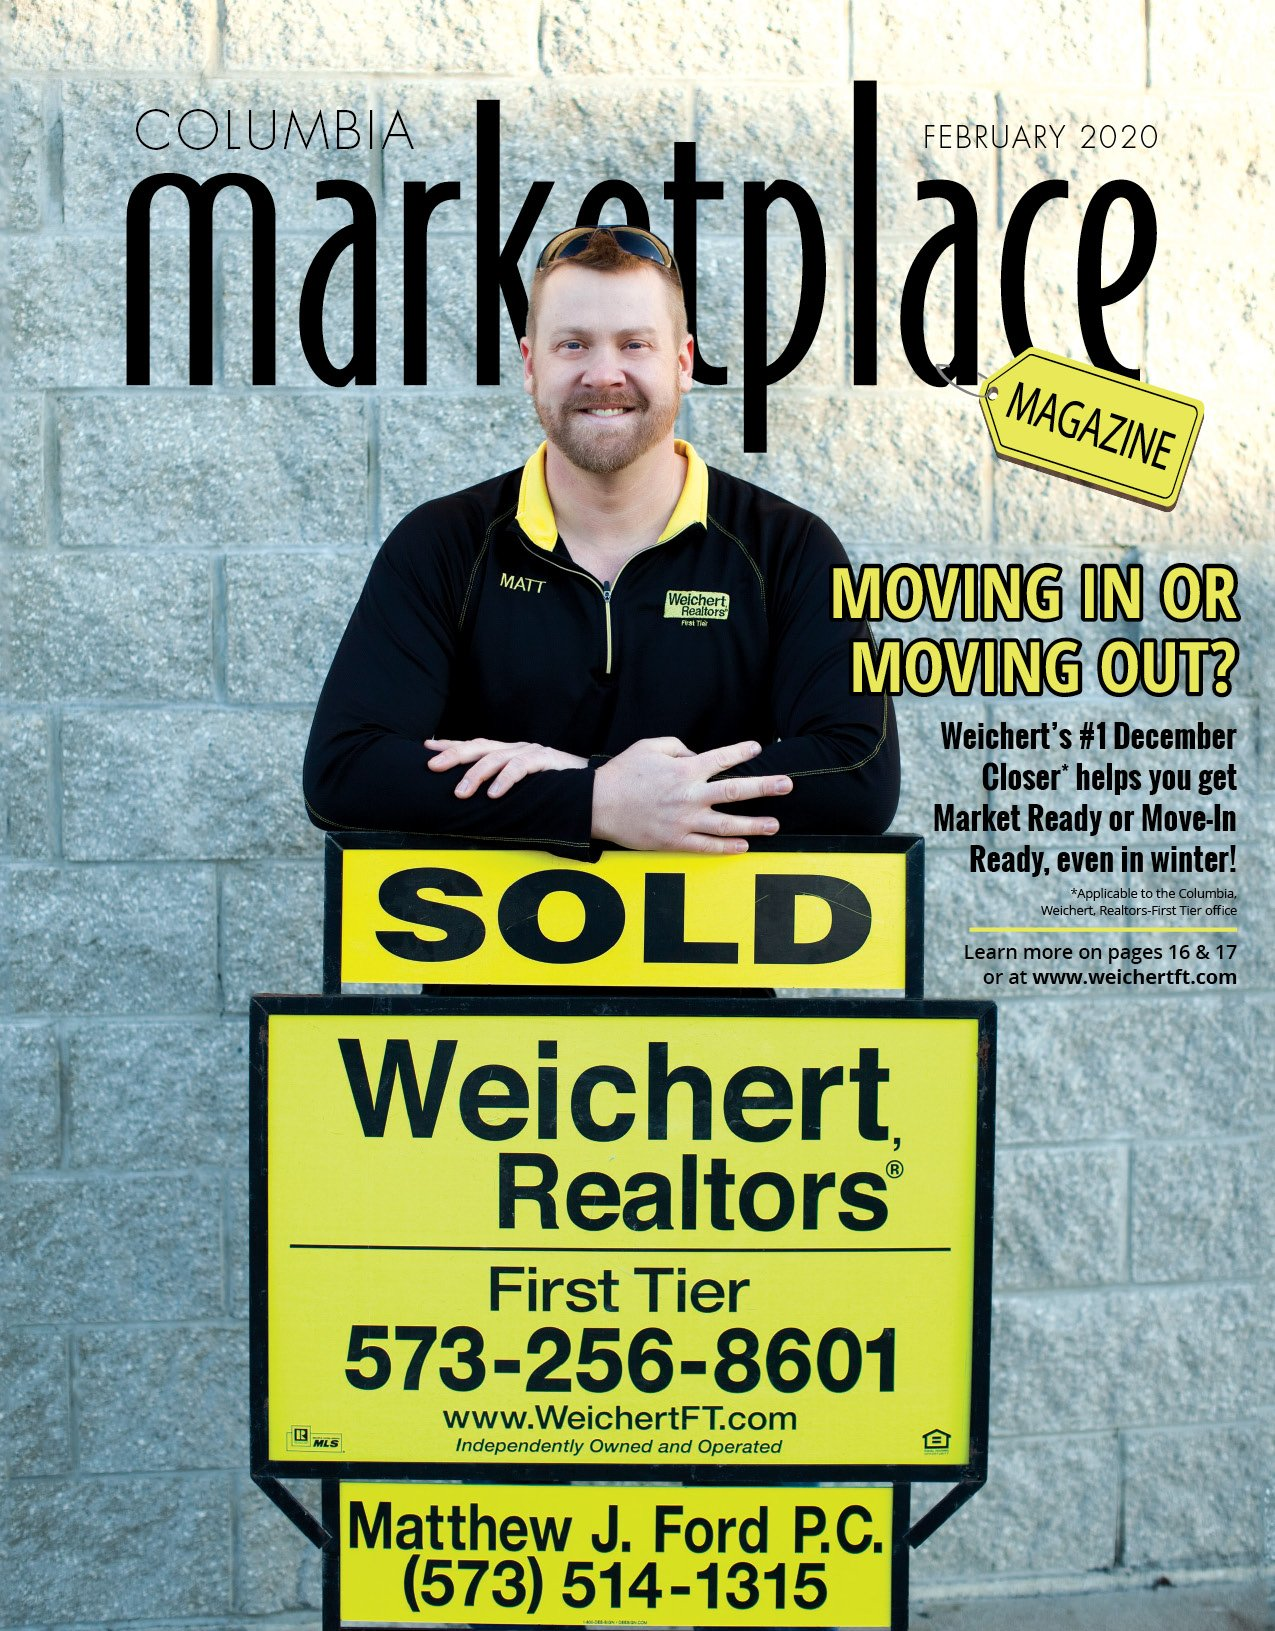 Columbia Marketplace Magazine by Modern Media Concepts February 2020 Edition Featuring Matthew J Ford PC Weichert Realtors First Tier Columbia Missouri